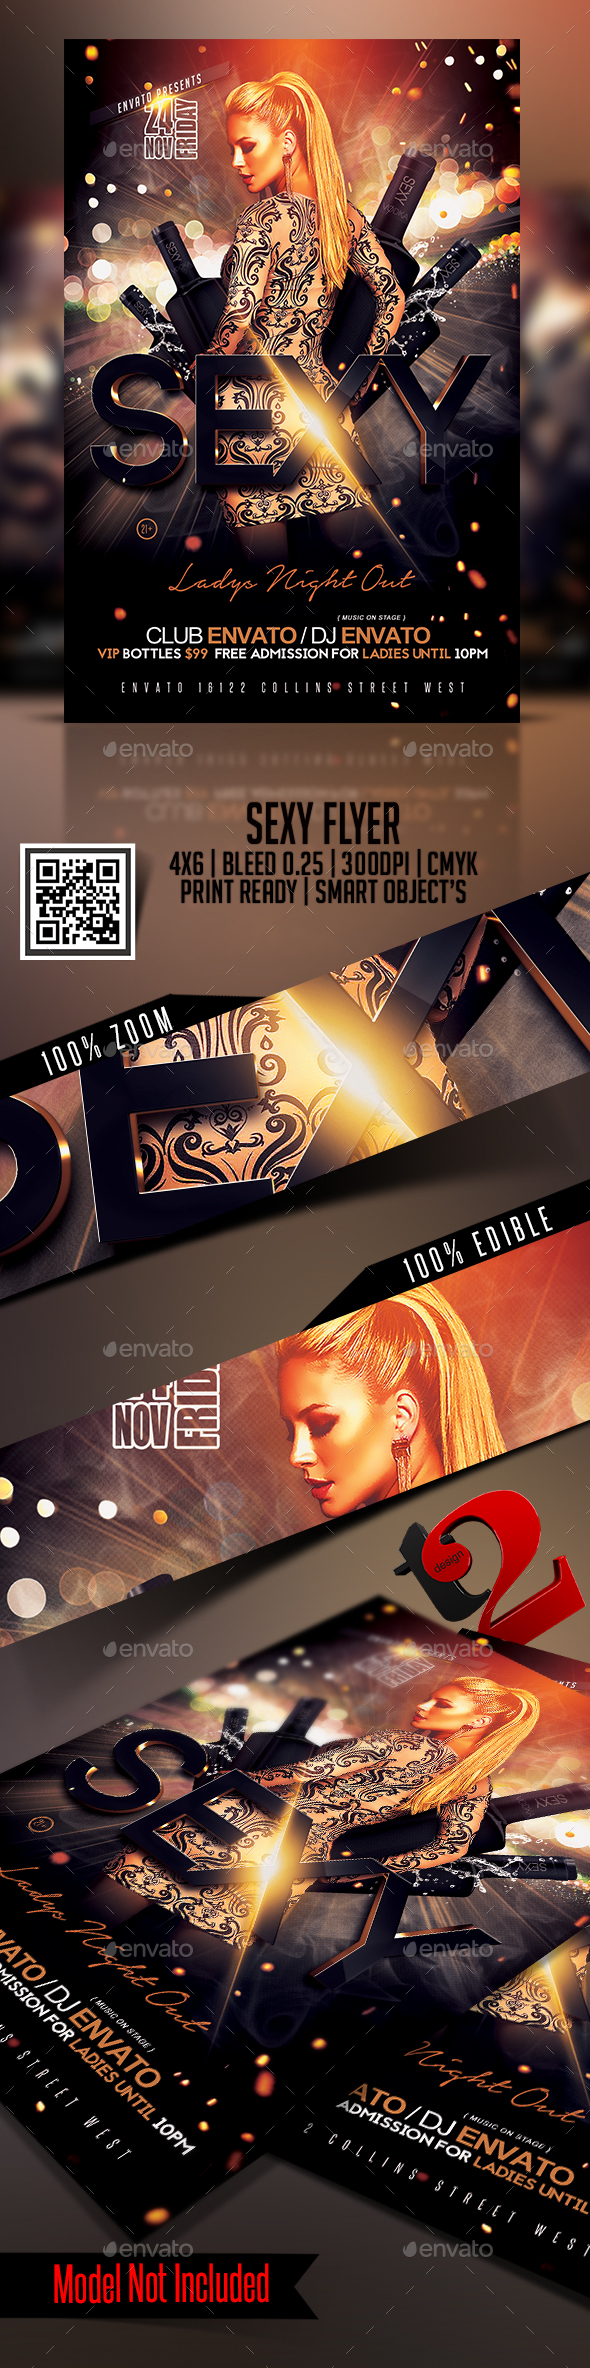 Sexy Lady's Night Out Flyer Templates - Clubs & Parties Events